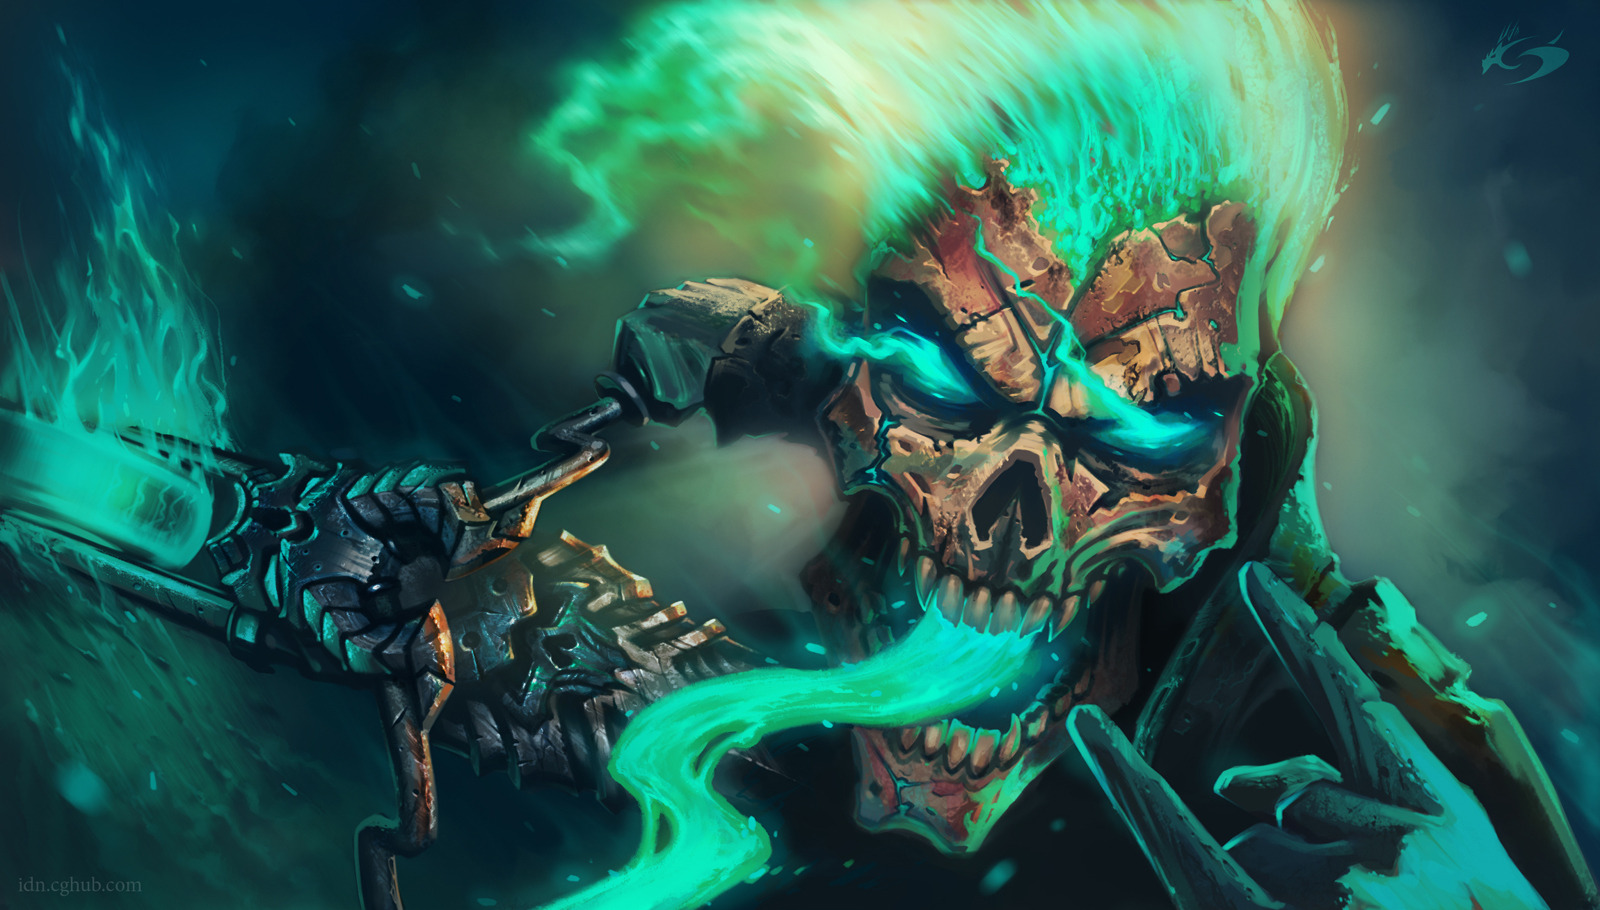 Skull Wallpaper and Background Image   1600x910   ID:385503